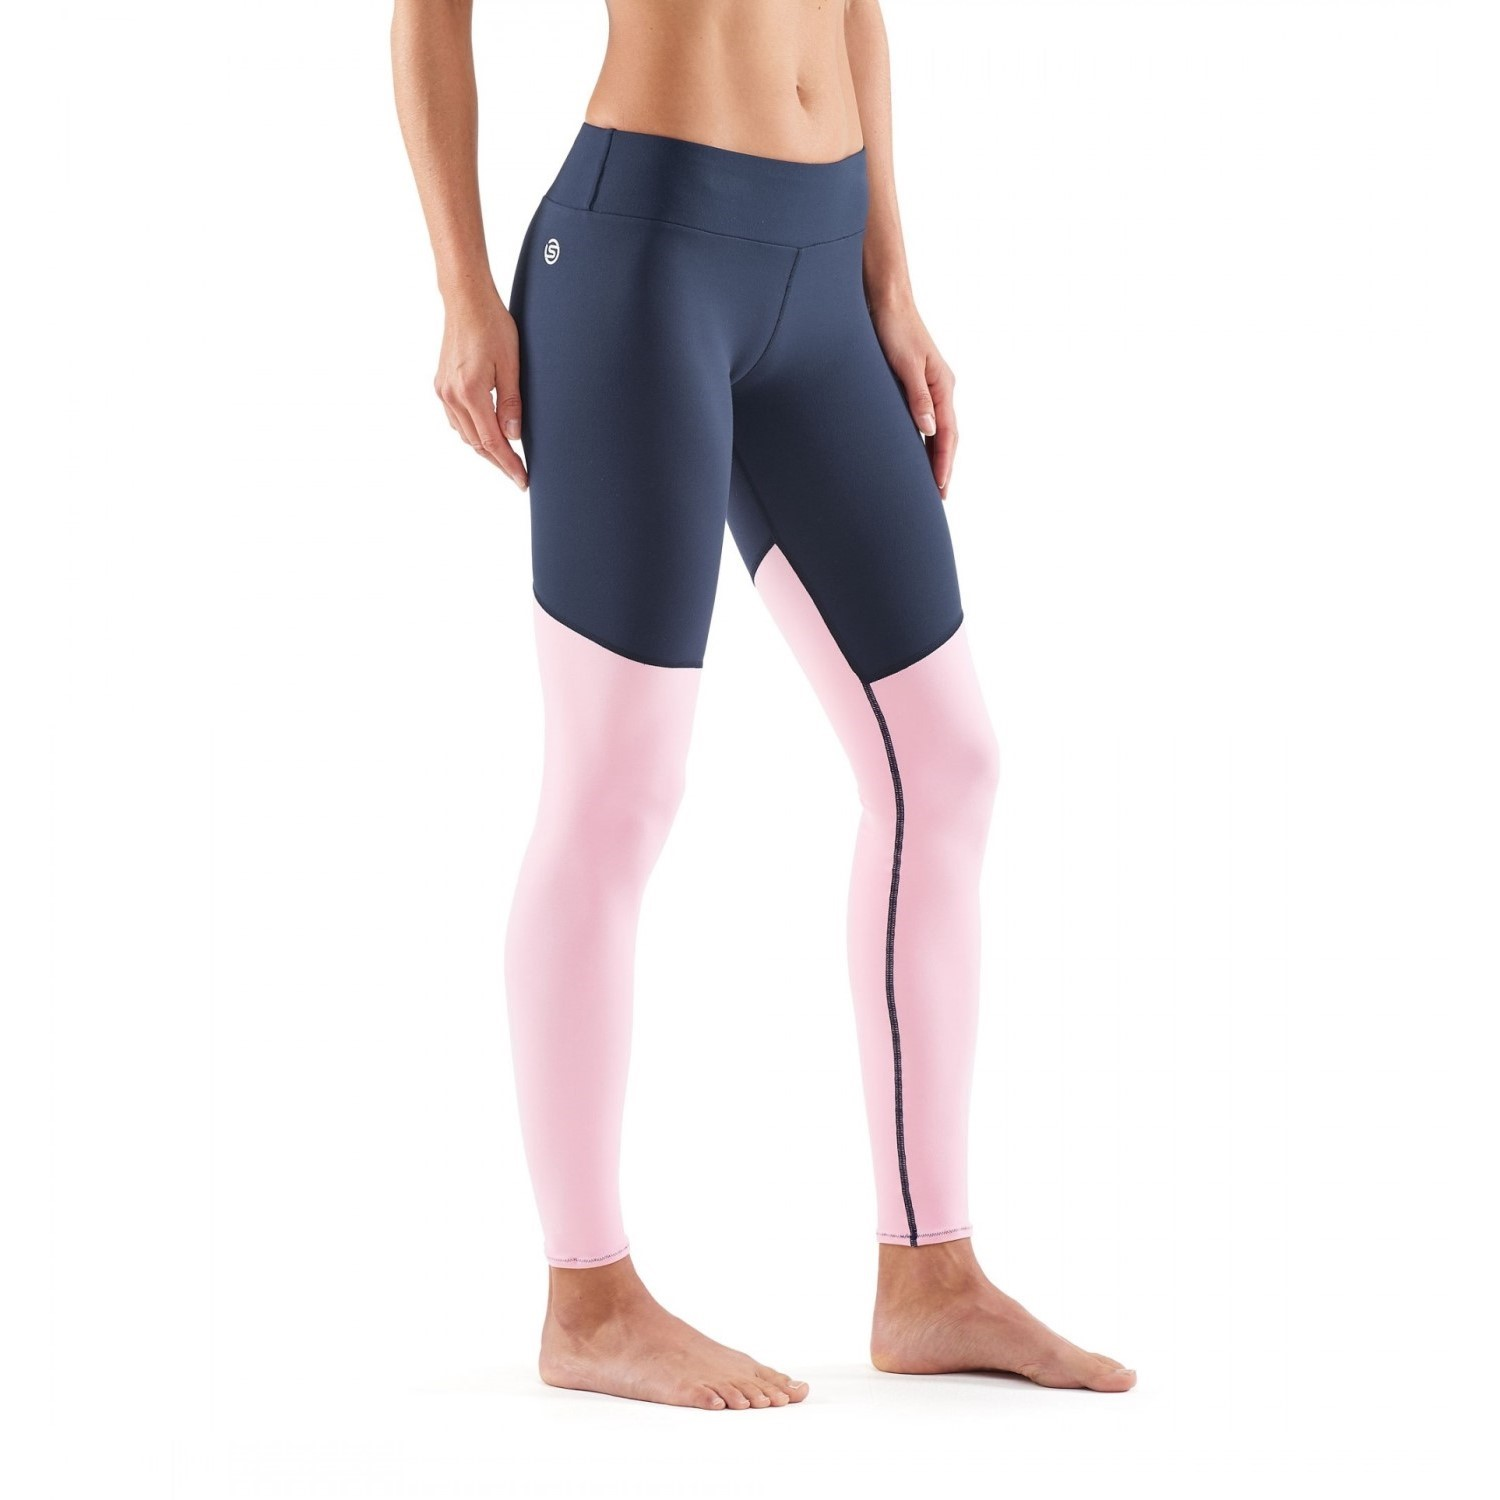 78a4c14bf6 Skins DNAmic Soft Womens Compression Long Tights - Cameo Pink/Navy Blue